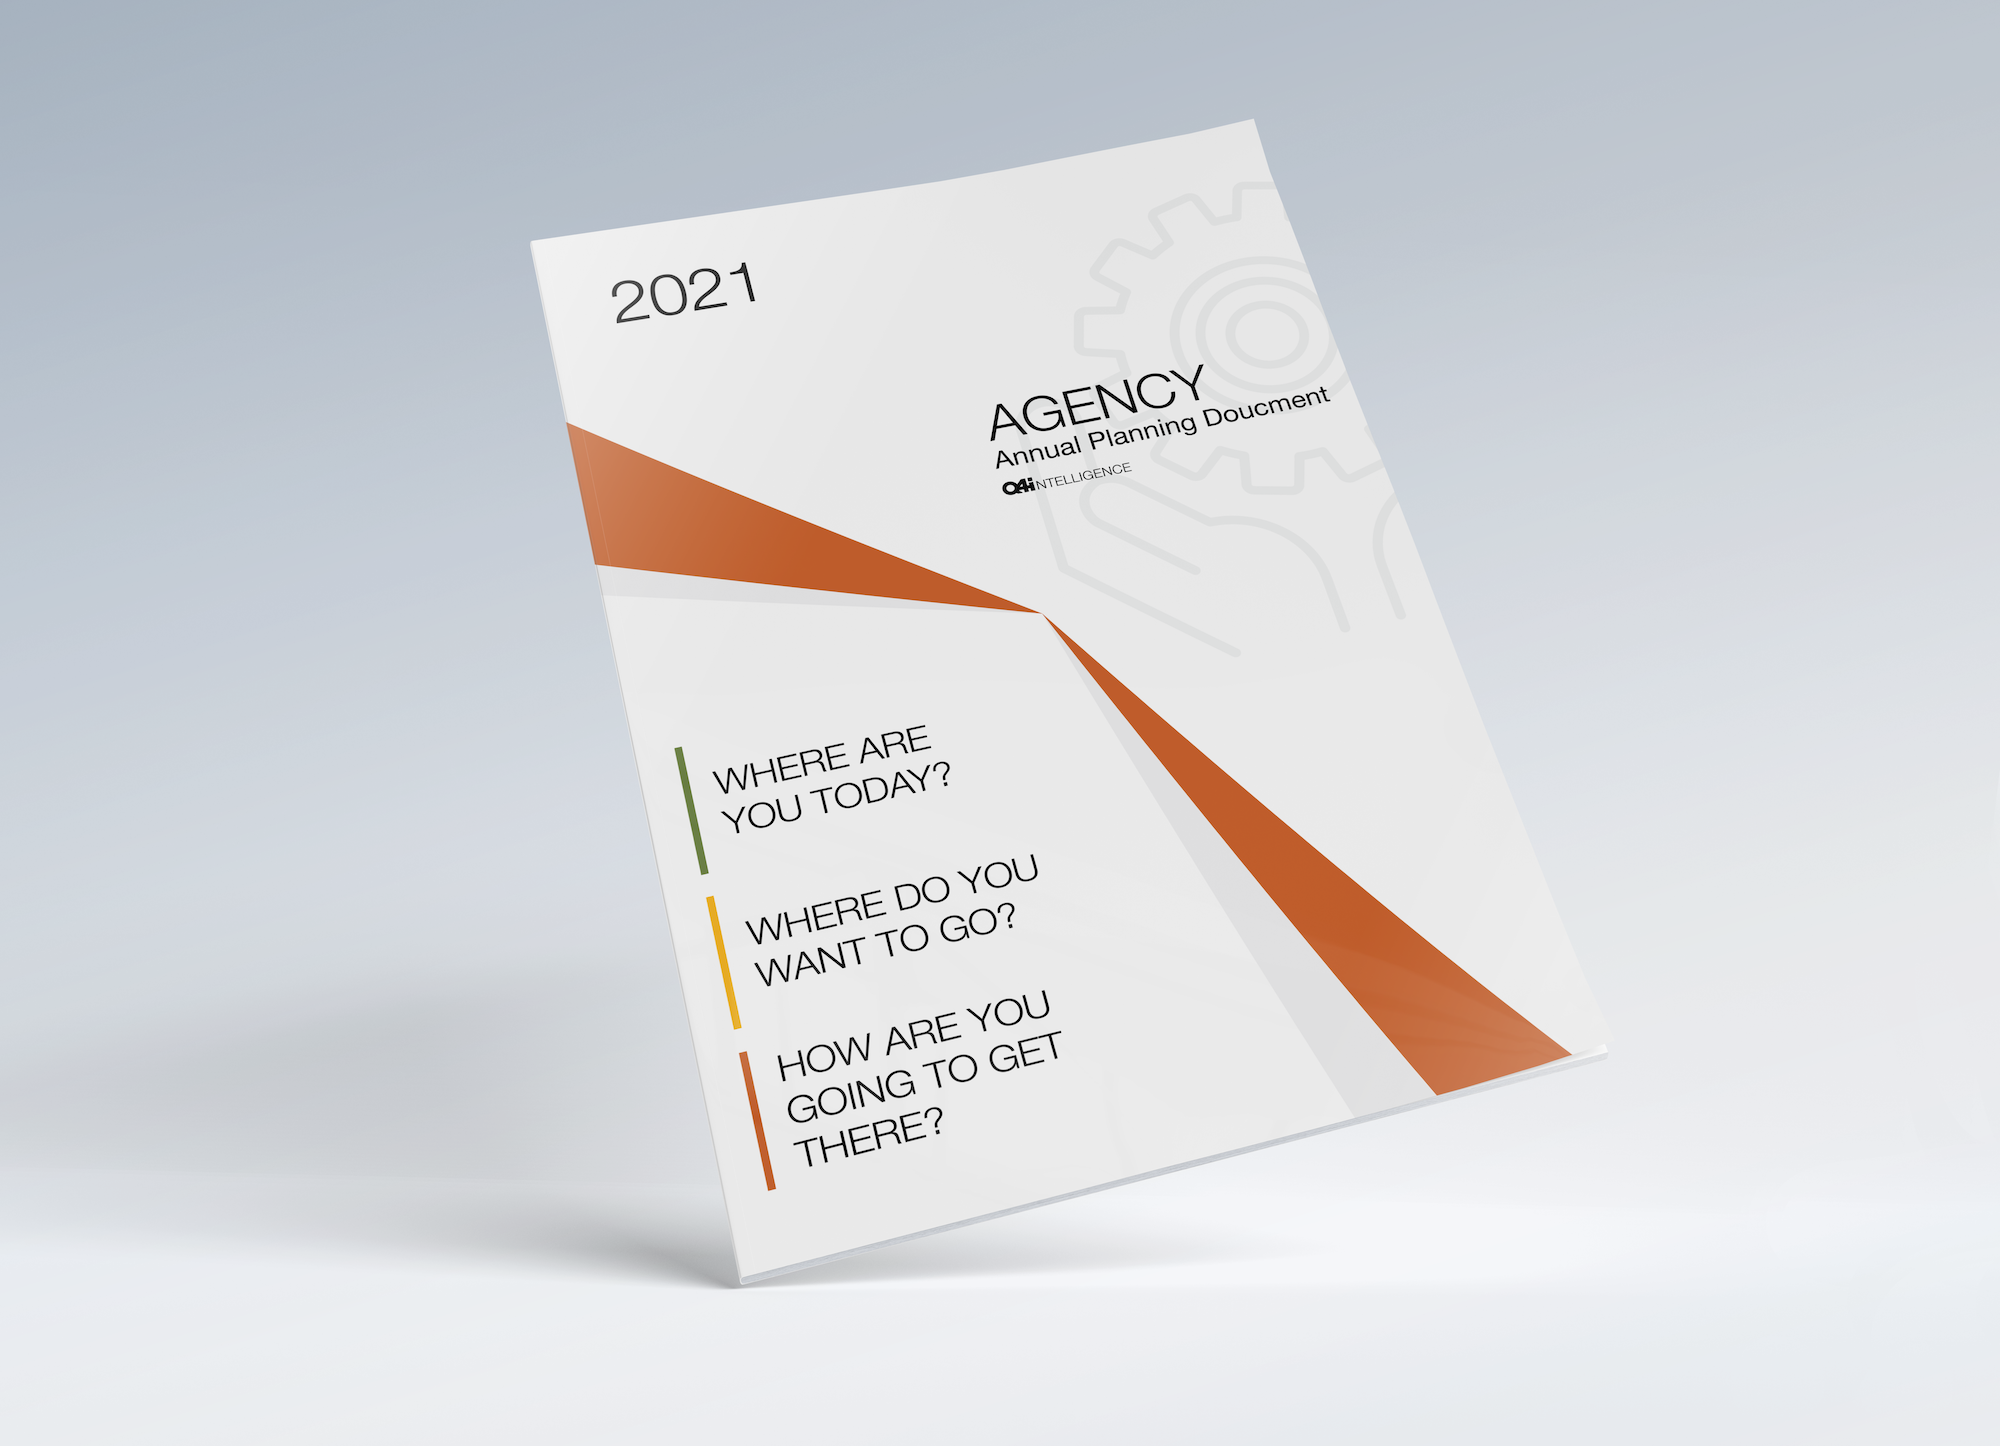 Agency Planning Doc Graphic-1